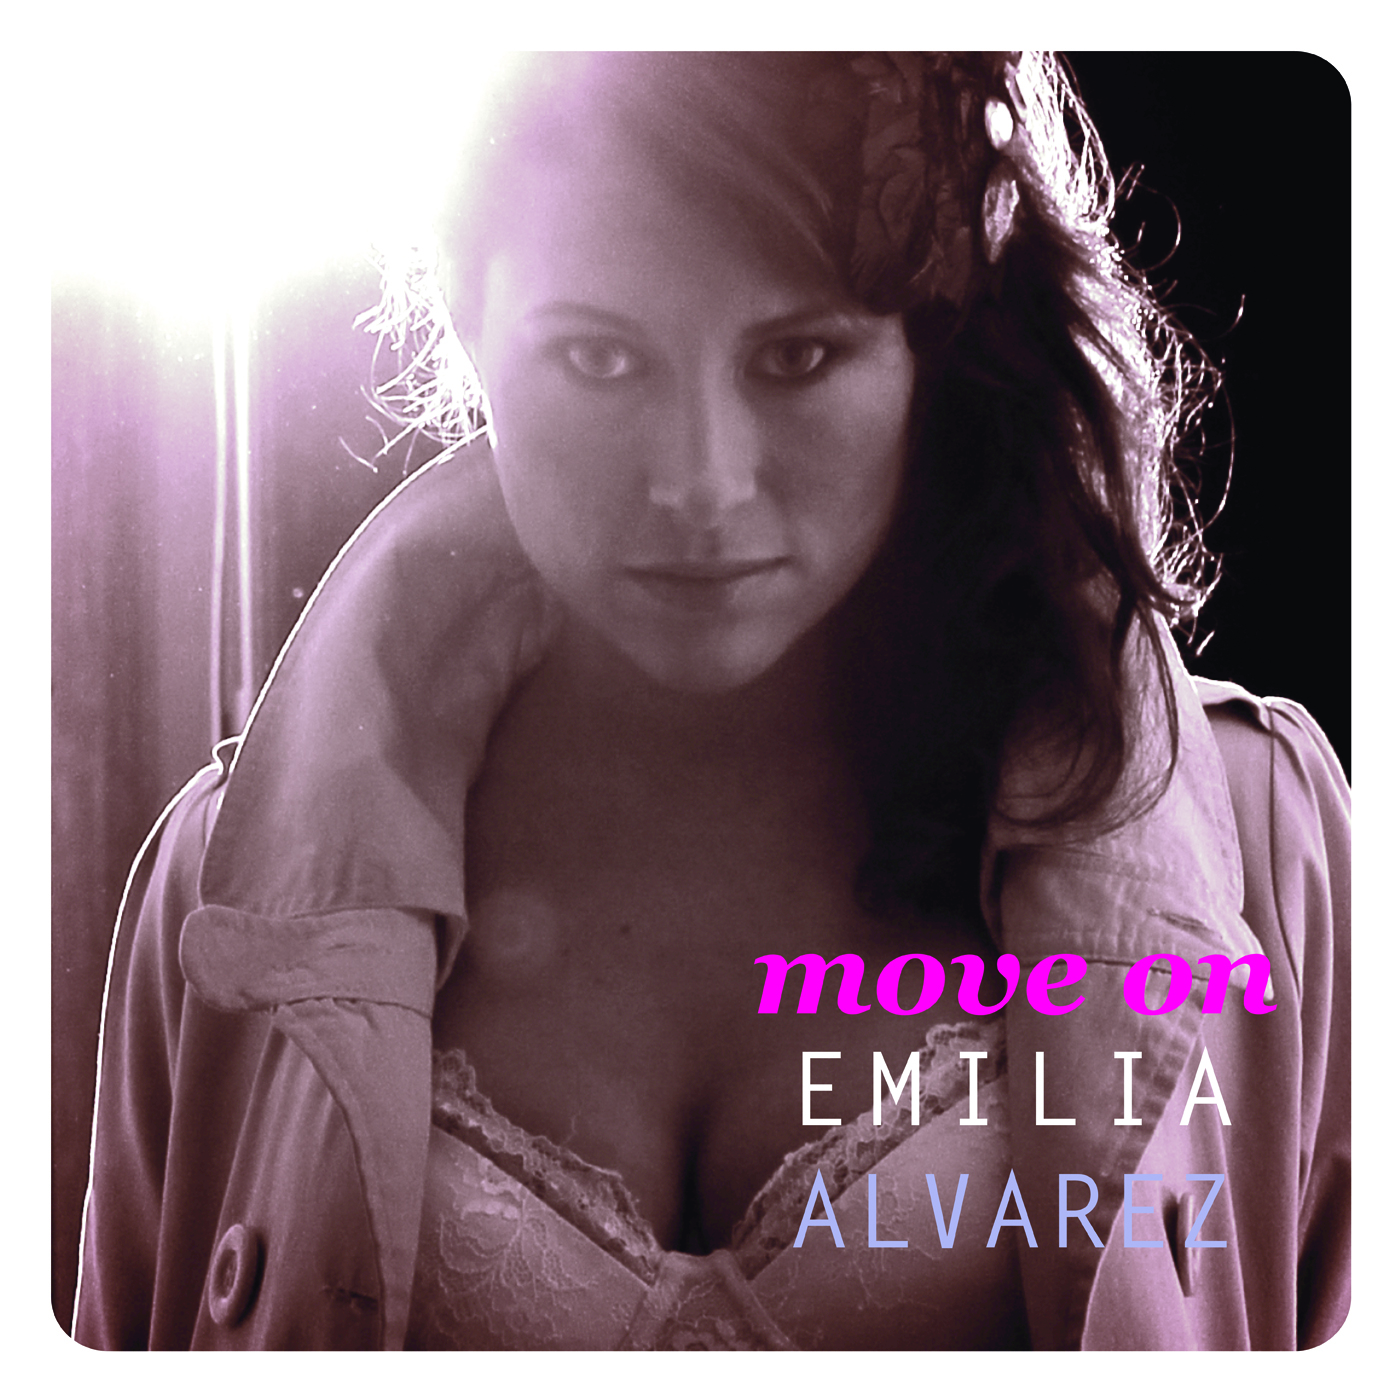 Emilia Alvarez – Move On (EP). Beställ CD genom att maila till shop@monophon.se: SEK 59 inkl porto inom Sverige (betalning via Payson.se eller faktura, vänligen ange önskad betalningsmetod). INTERNATIONAL ORDERS: Order CD by sending an email to shop@monophon.se: SEK 59 (approx. 6 € / 8 $) incl. international shipping (payment through PayPal - credit cards accepted). Emilia Alvarez - Move On monophon MPHEP004, 2011.